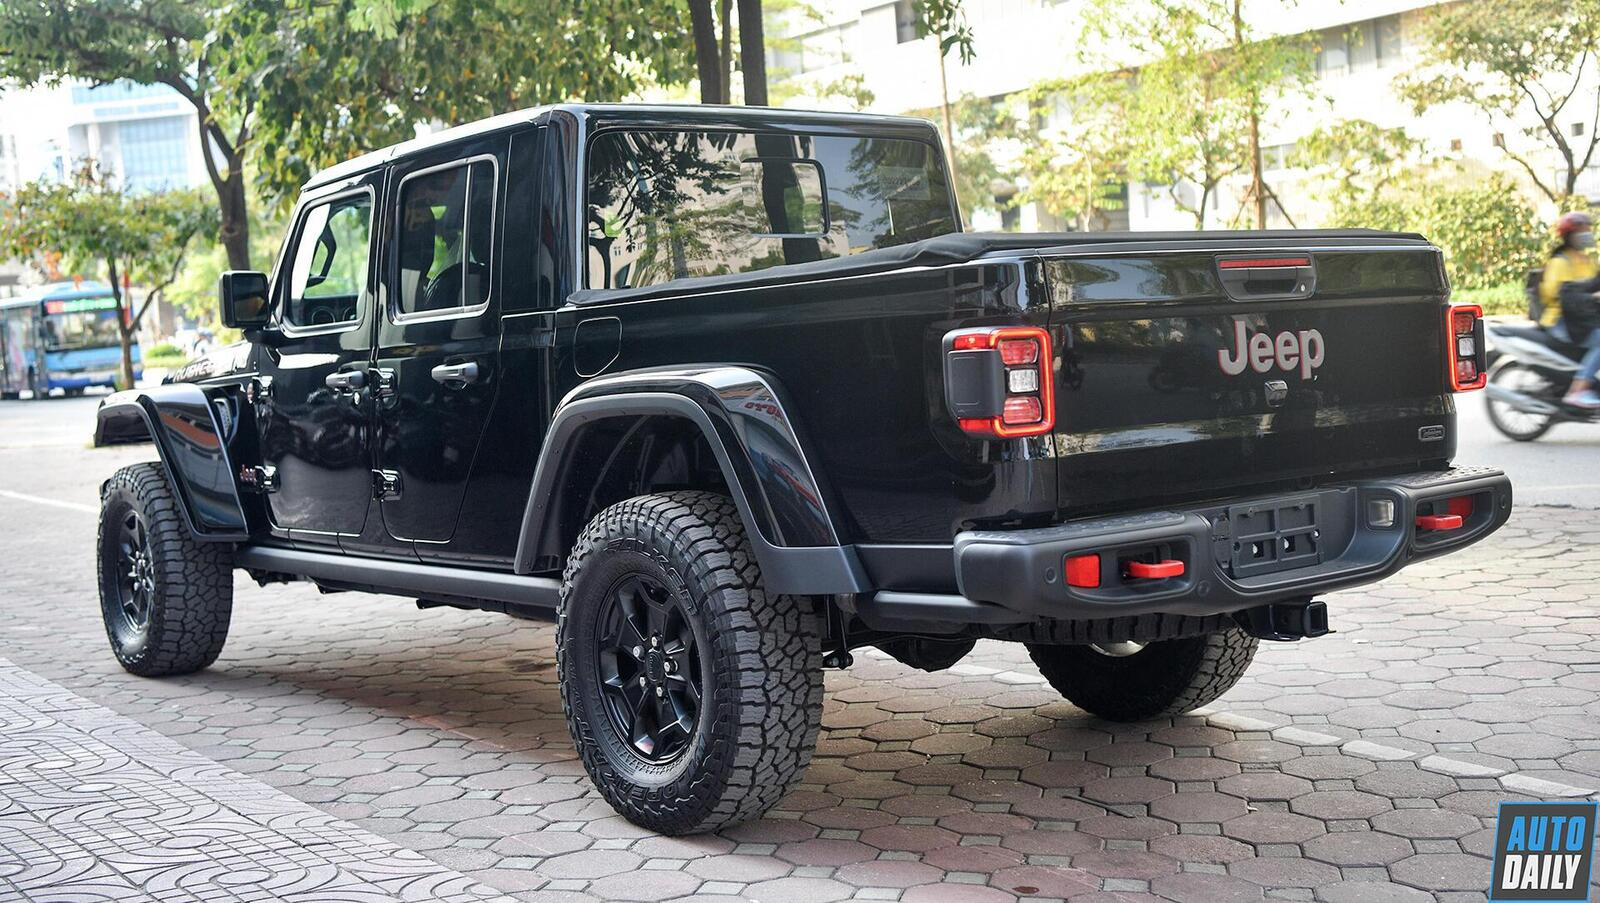 anh-chi-tiet-jeep-gladiator-2020-gia-hon-3-7-ty-dong-tai-viet-nam